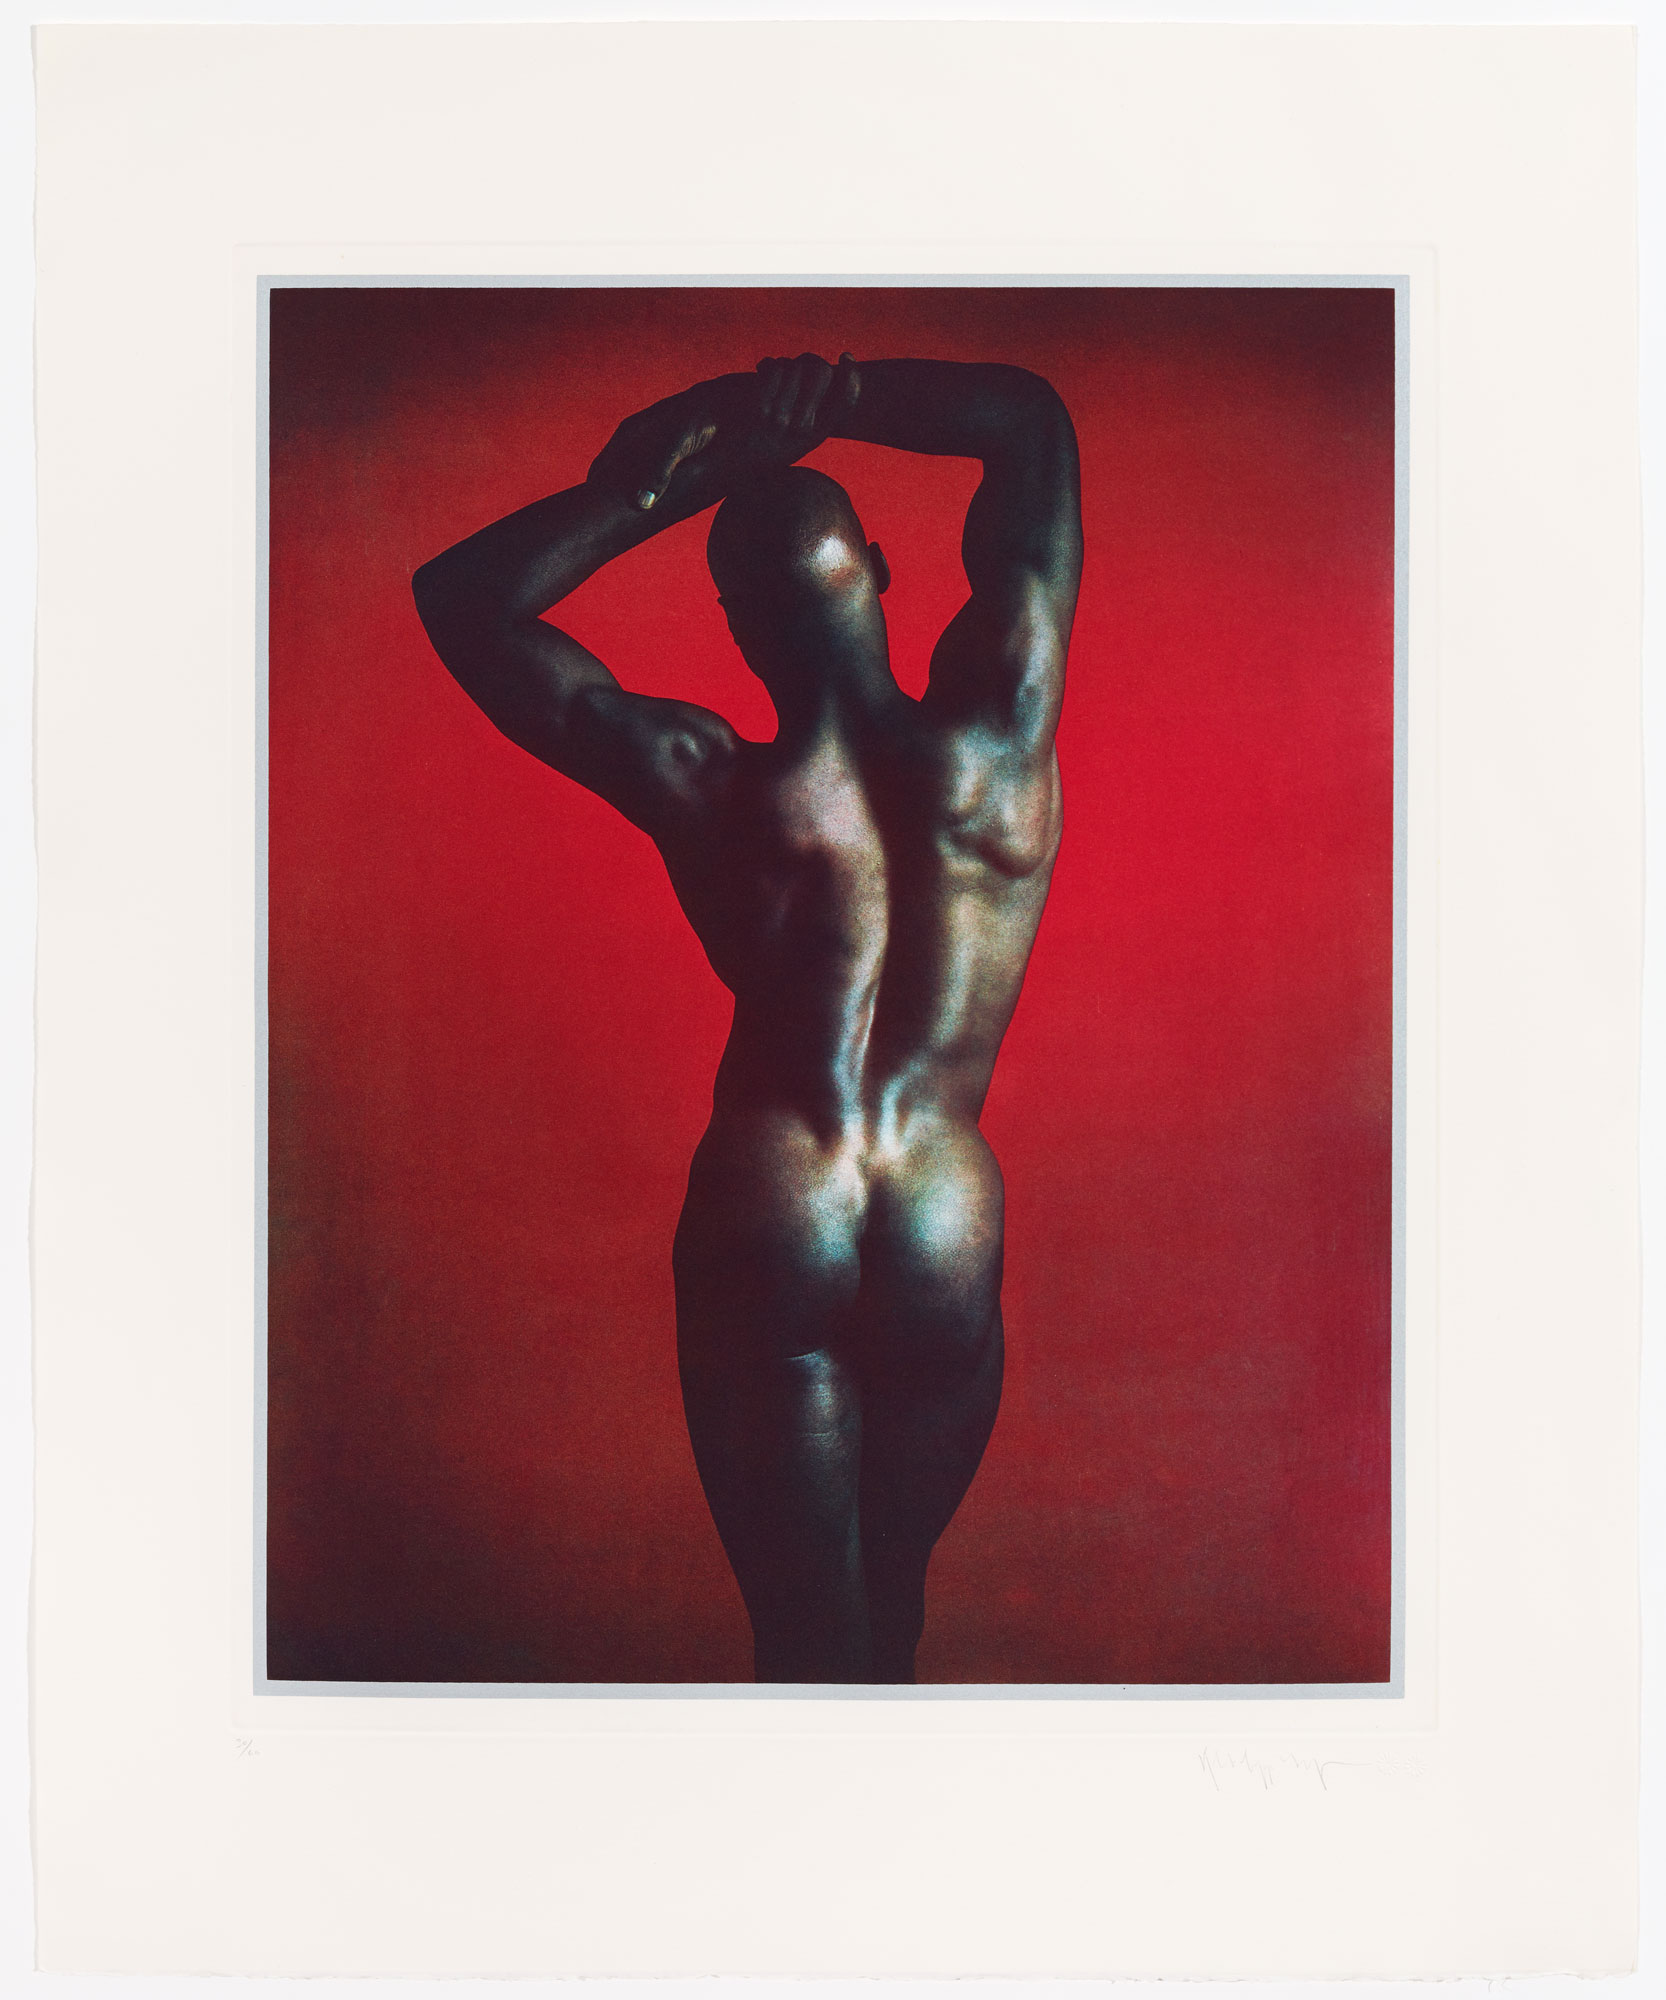 Untitled #1 From The Ken Moody Portfolio by Robert Mapplethorpe